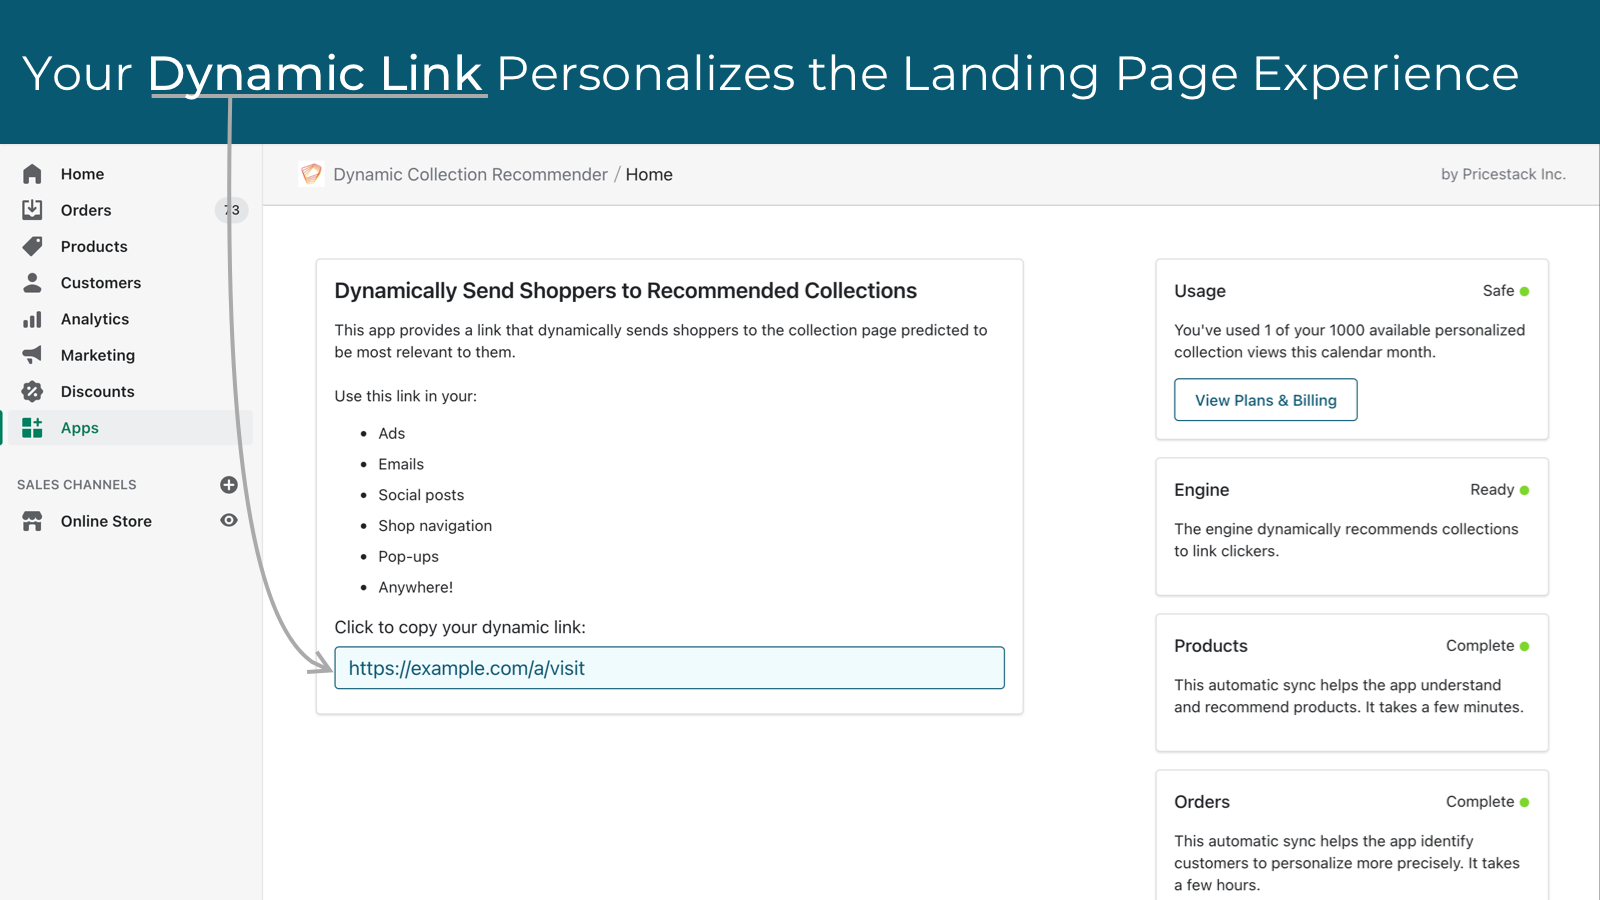 Copy your dynamic link from this app's user interface